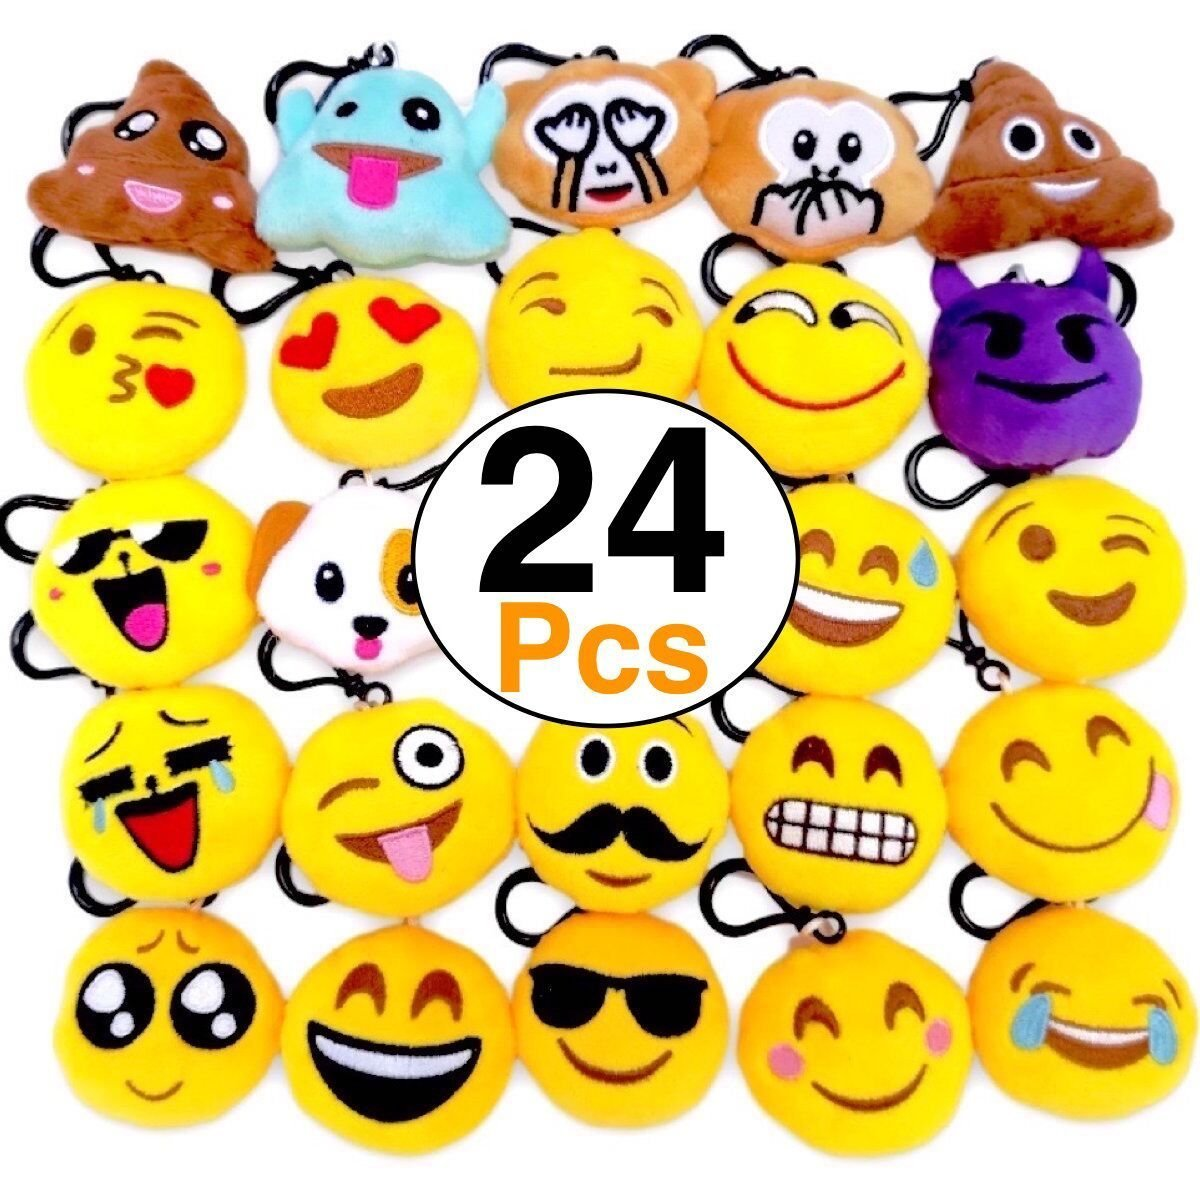 OHill 24 Pack Emoji Plush Pillows Mini Keychain for Birthday Party, Home Decoration, Classroom Rewards and Party Favor by OHill